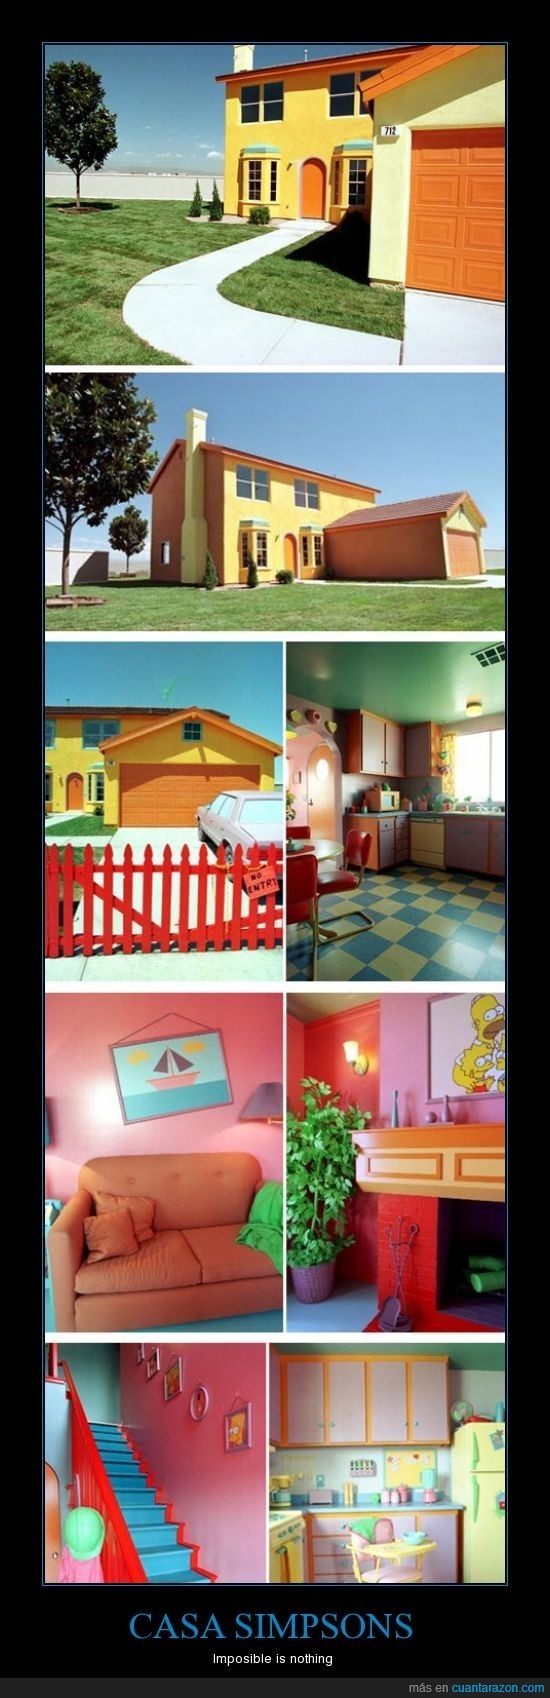 casa,real,simpsons